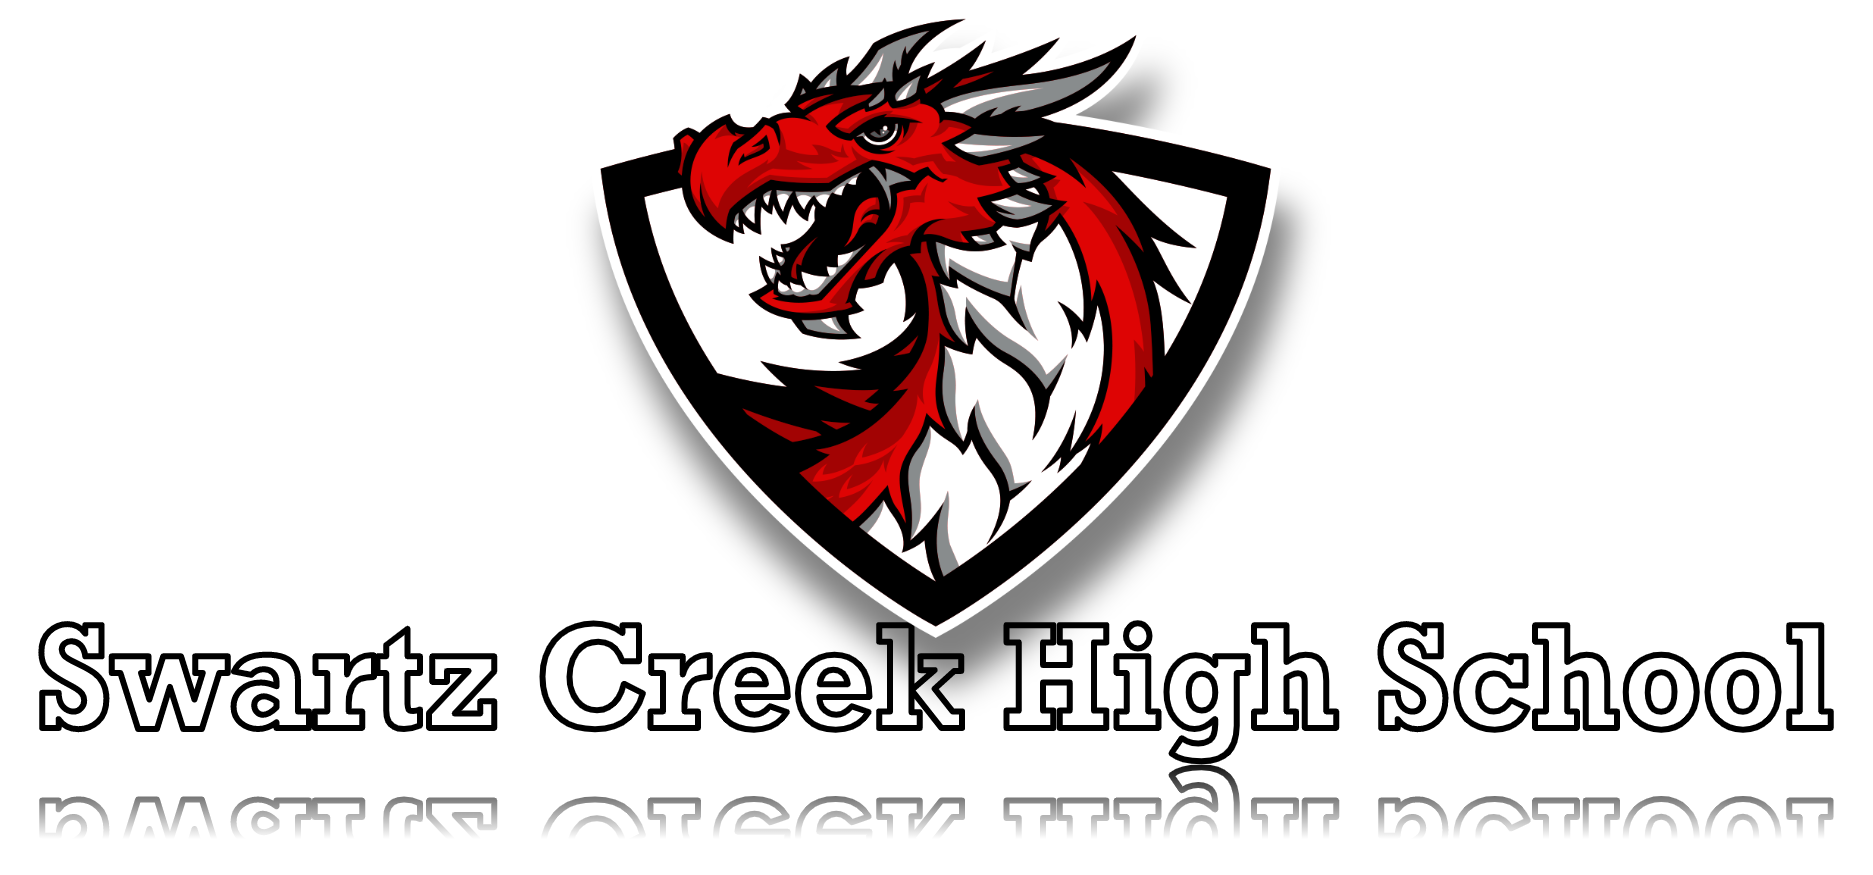 Dragon mascot and Title of Swartz Creek High School